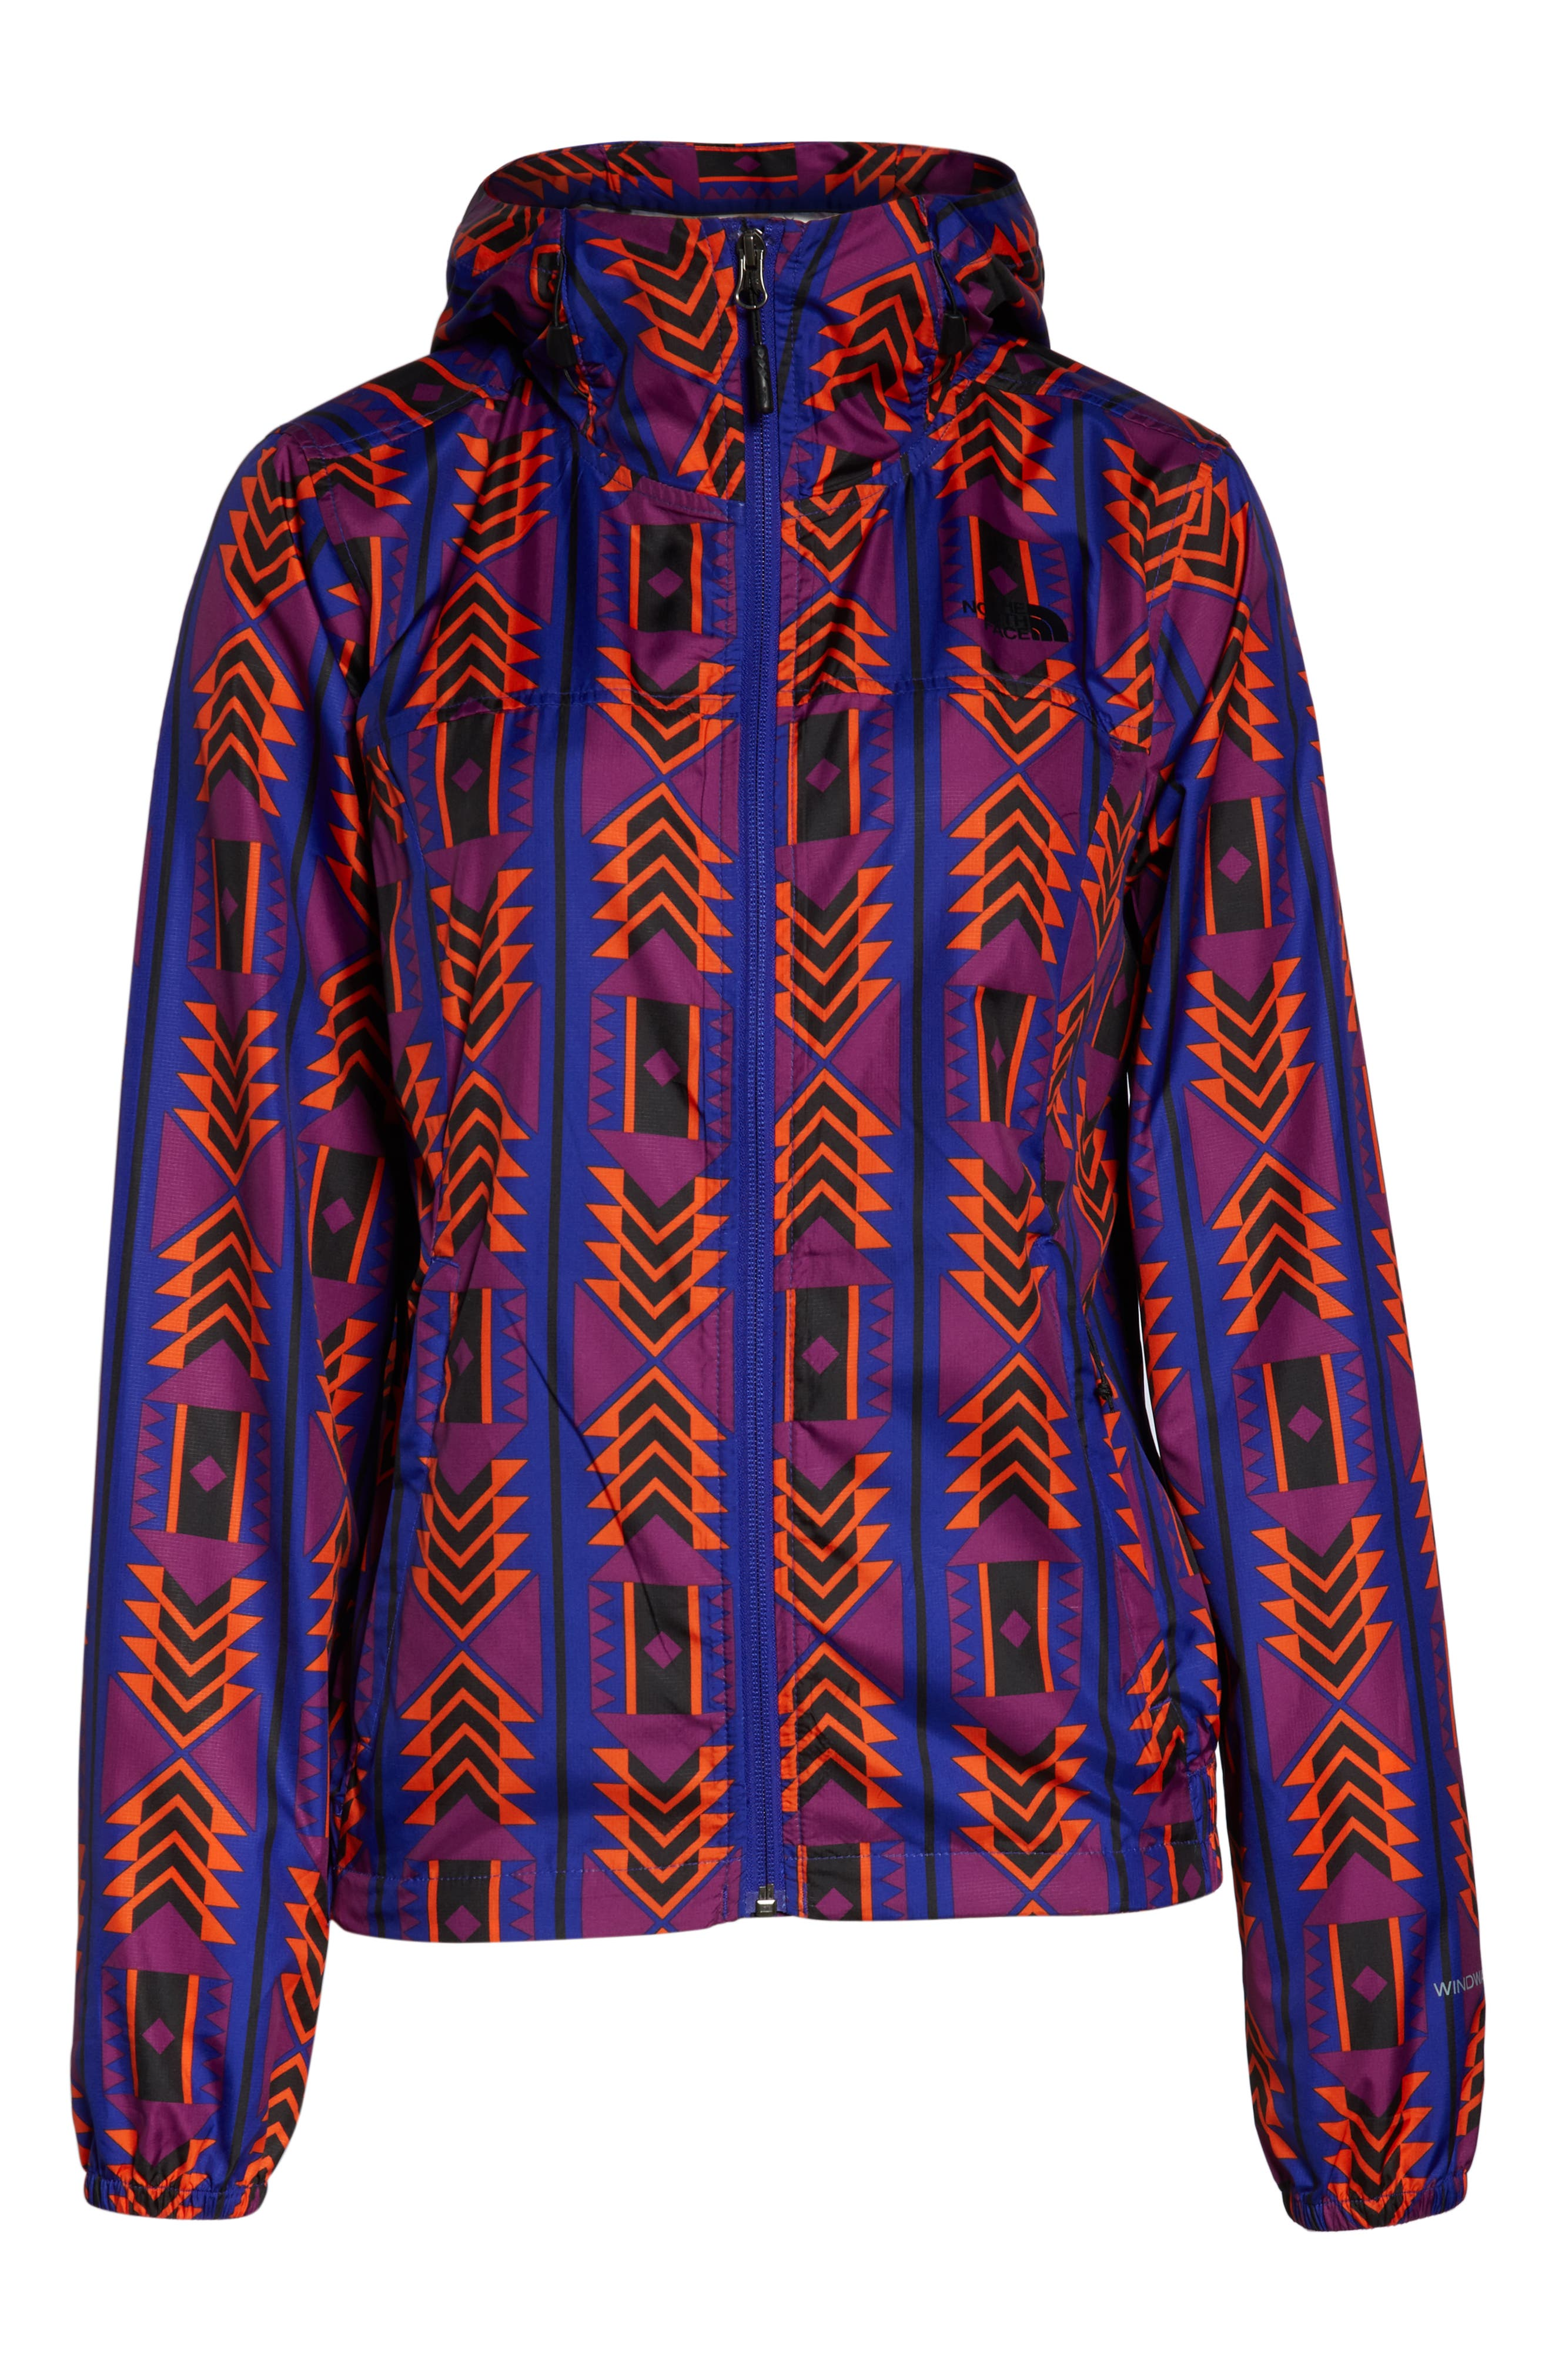 THE NORTH FACE, Print Cyclone 3.0 WindWall<sup>®</sup> Jacket, Alternate thumbnail 6, color, AZTEC BLUE 1992 RAGE PRINT